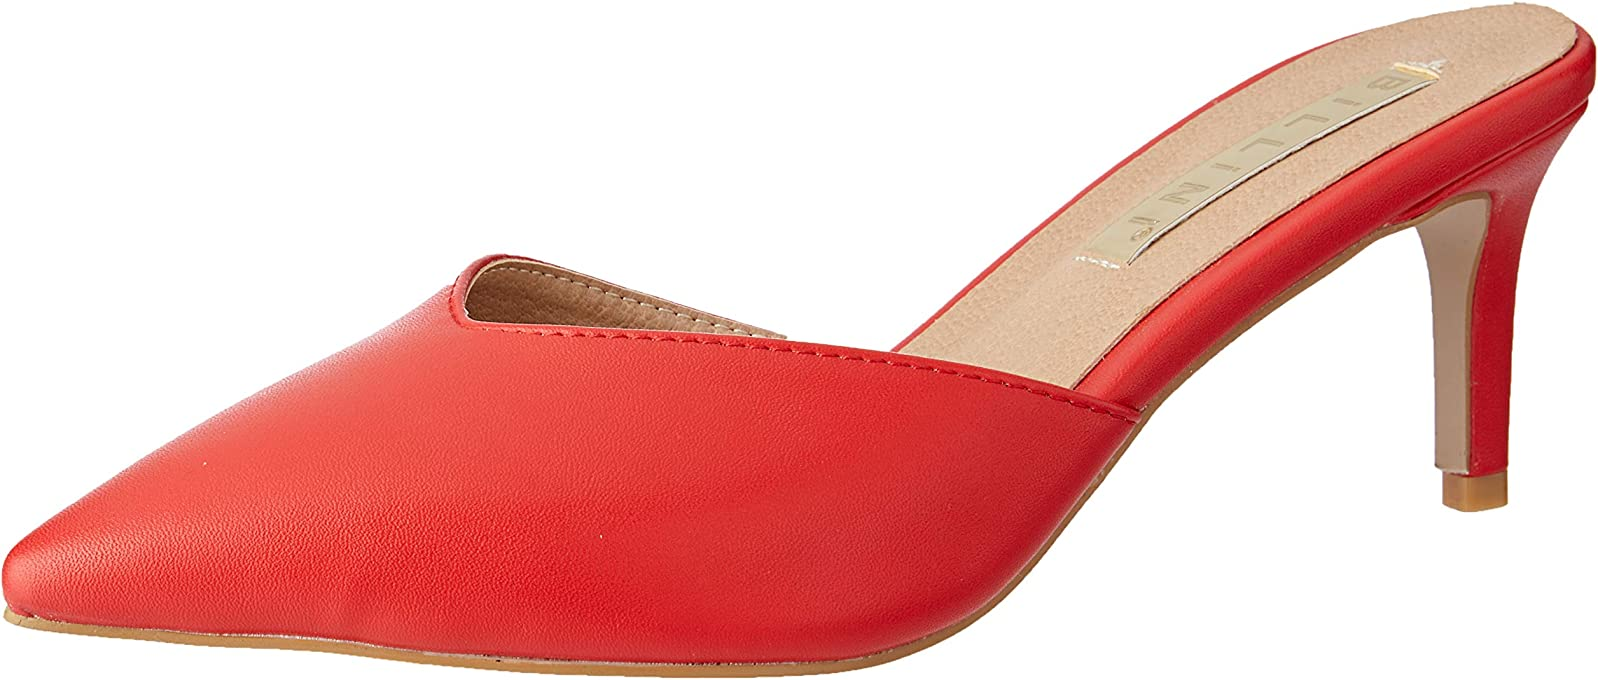 BILLINI Women's Bellagio Pointed-Toe Mule